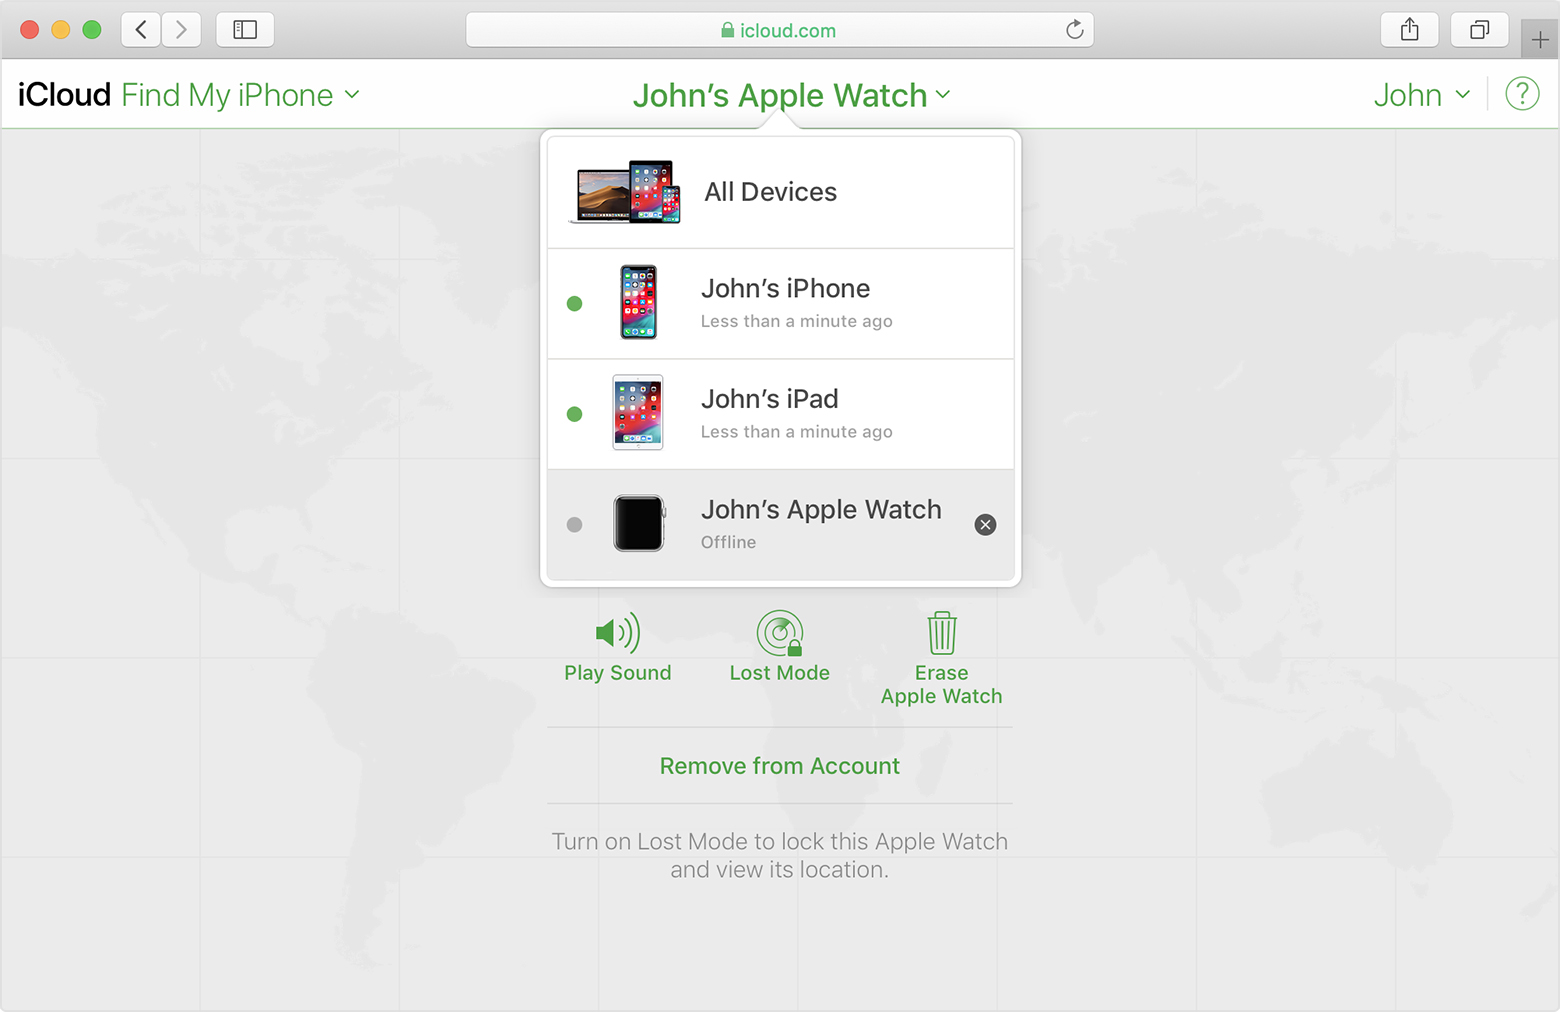 iCloud Find My iPhone showing John's Apple Watch